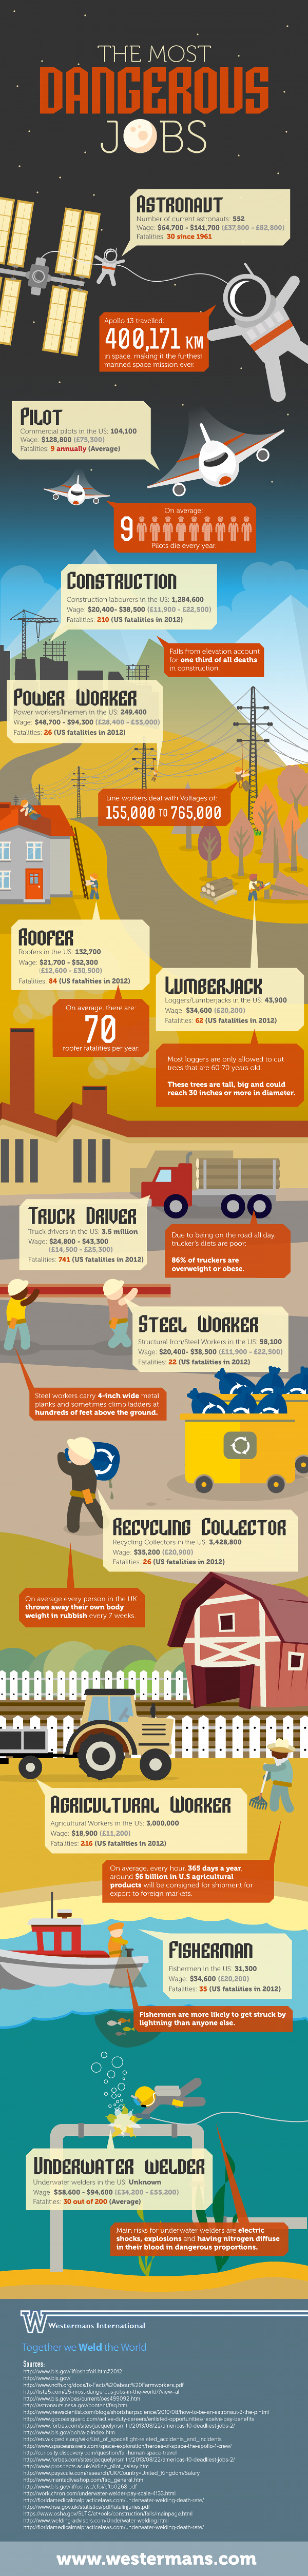 The Most Dangerous Jobs Infographic